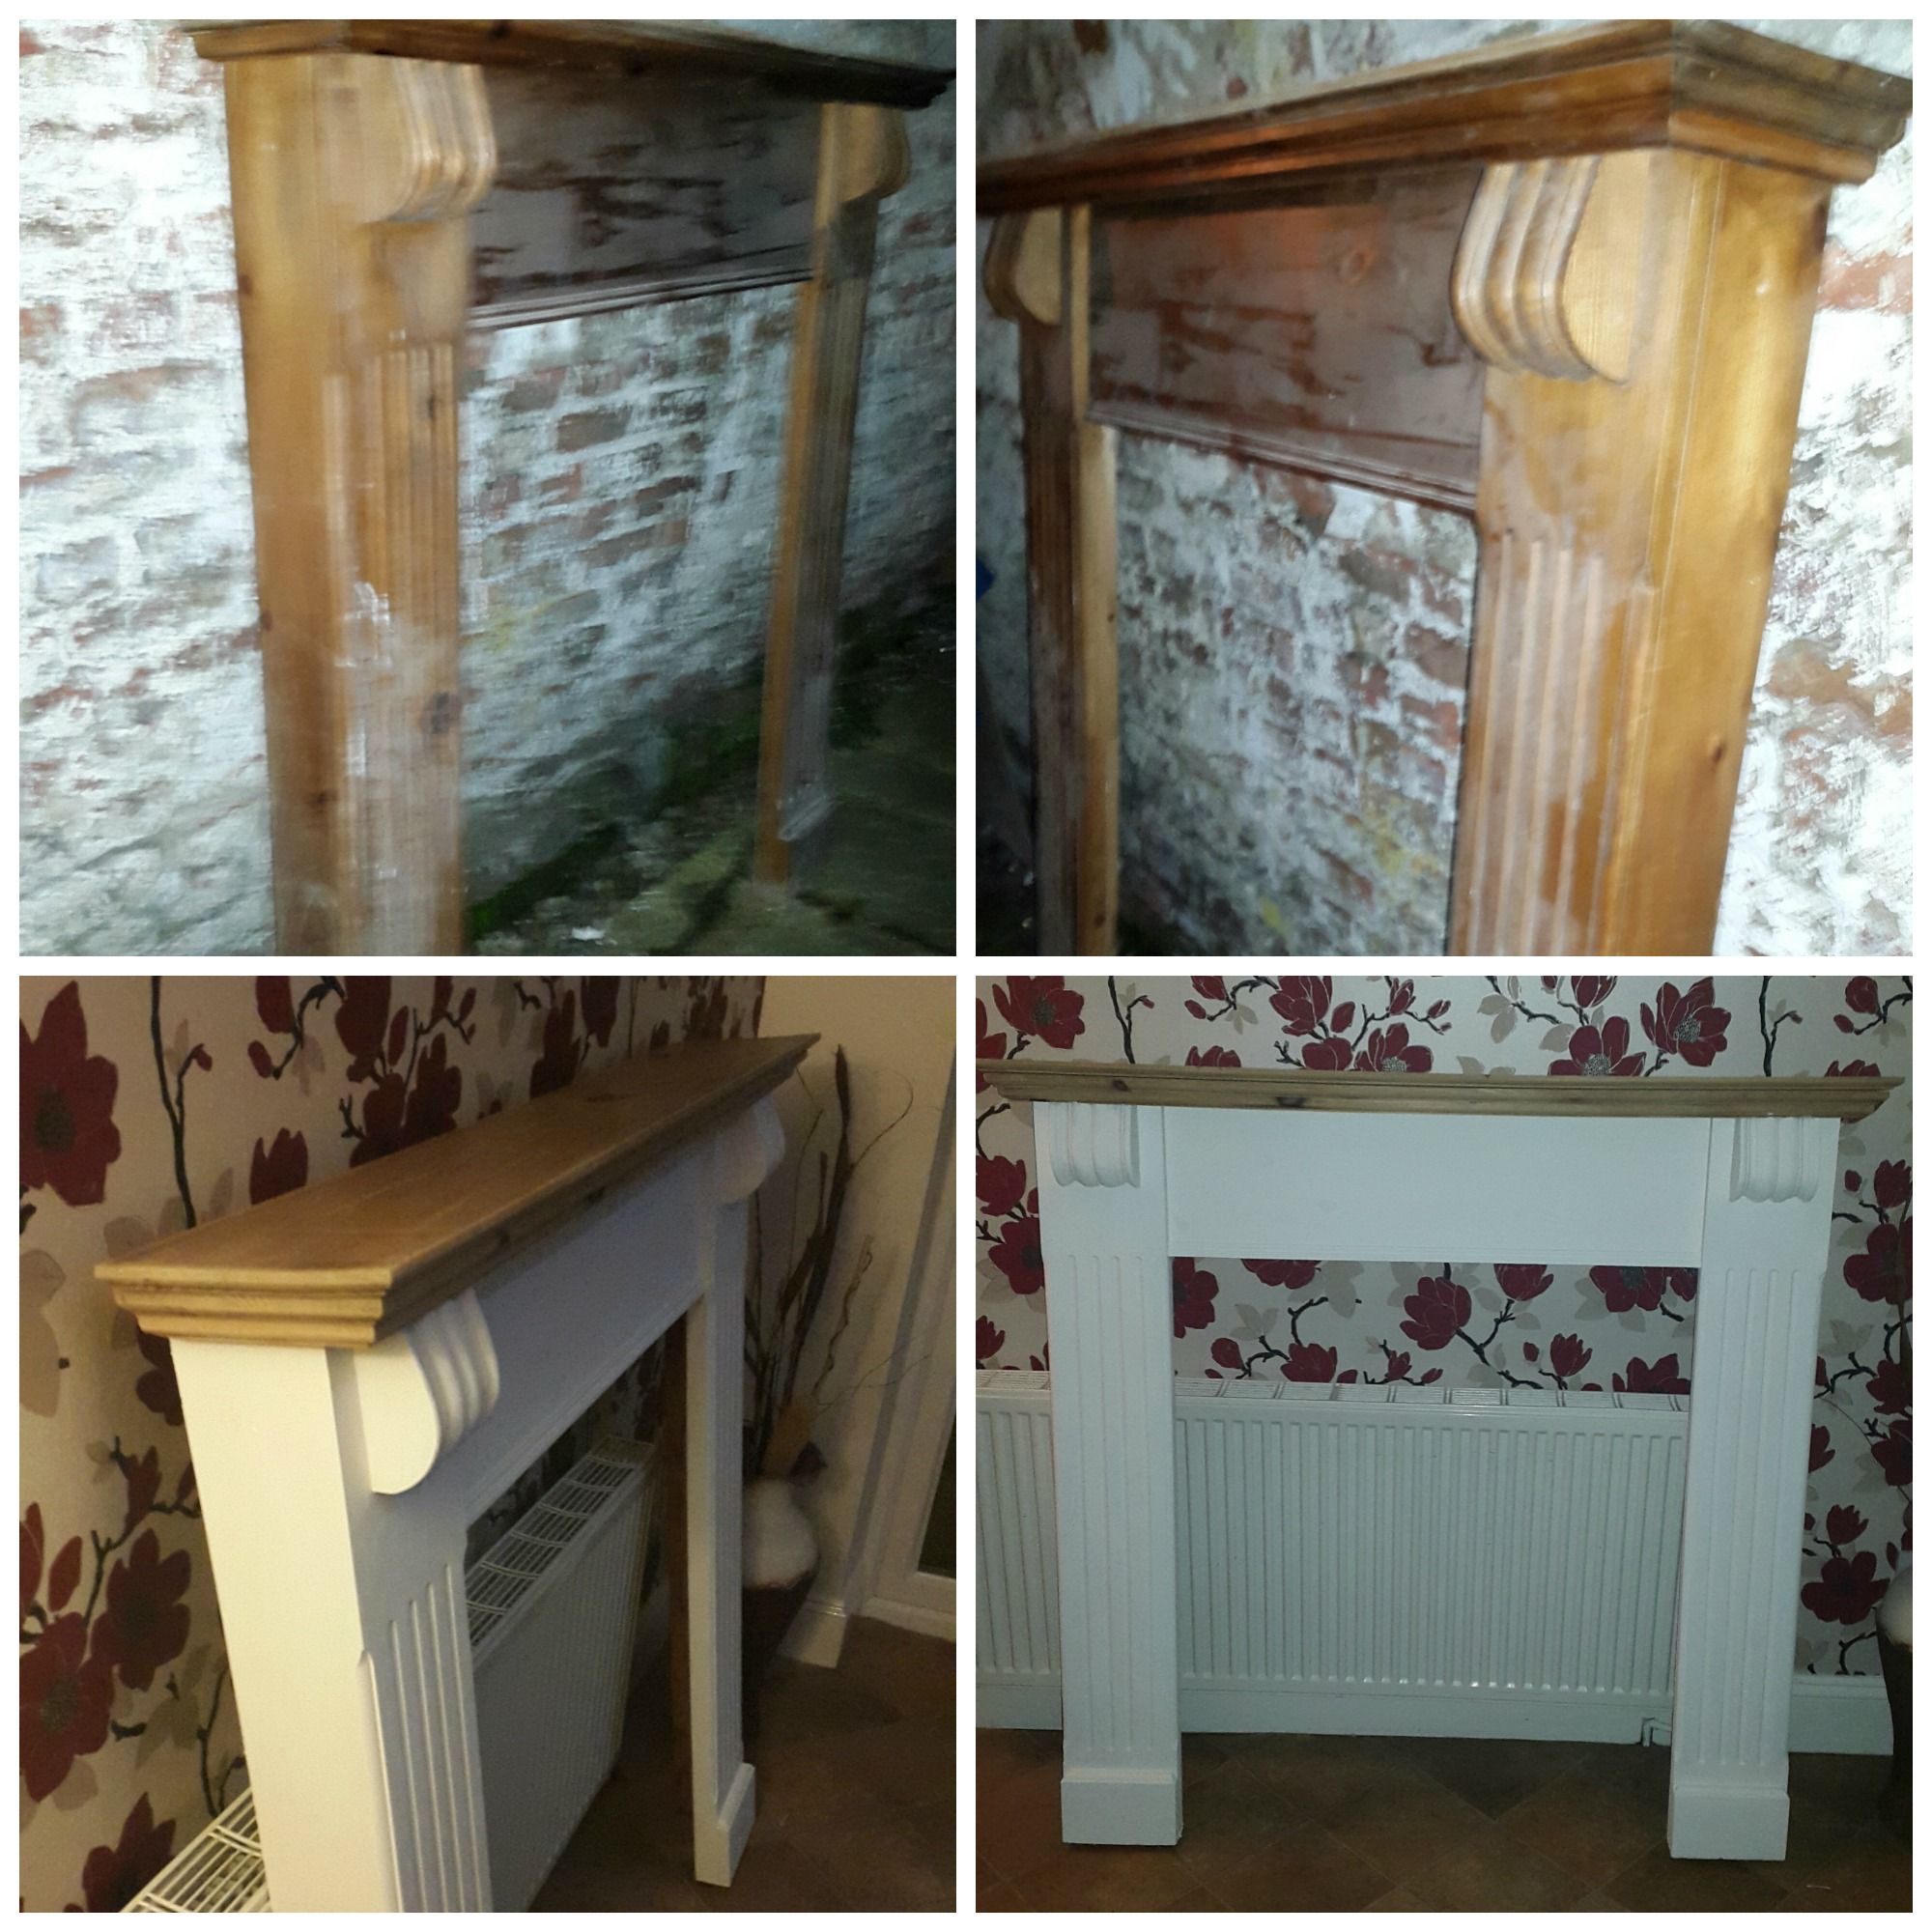 Painting An Old Fireplace Old Pine Fire Surround Upcycled Using Annie Sloan Chalk Paint In